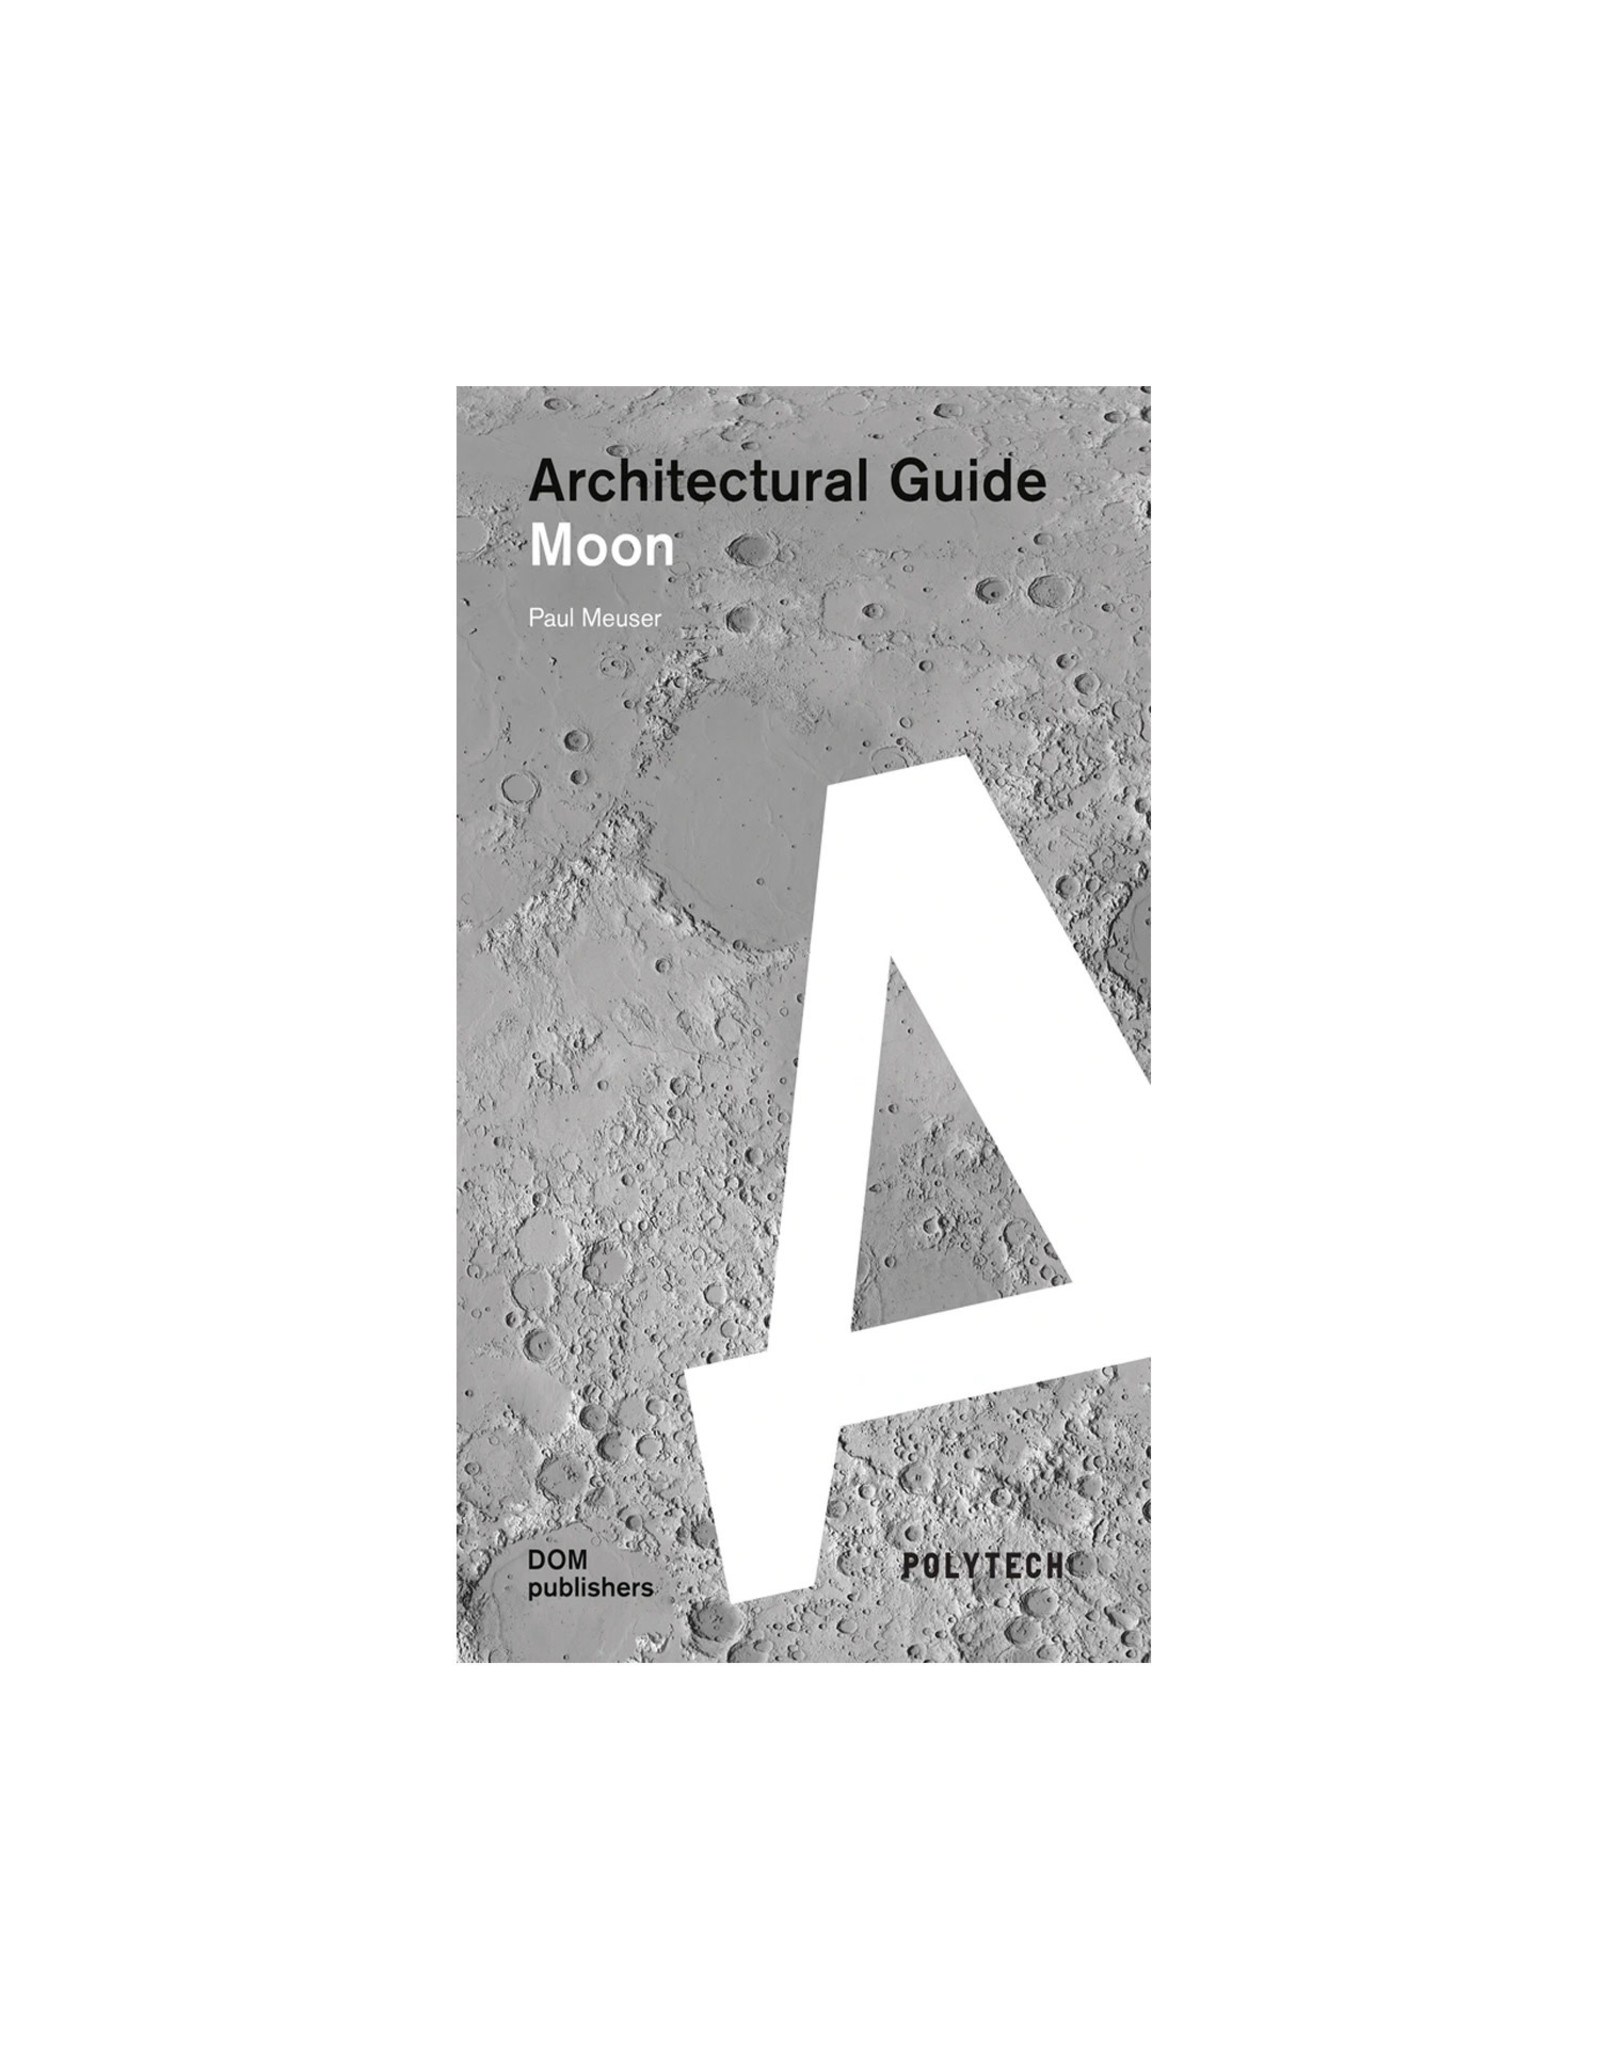 Architectural Guide, Moon